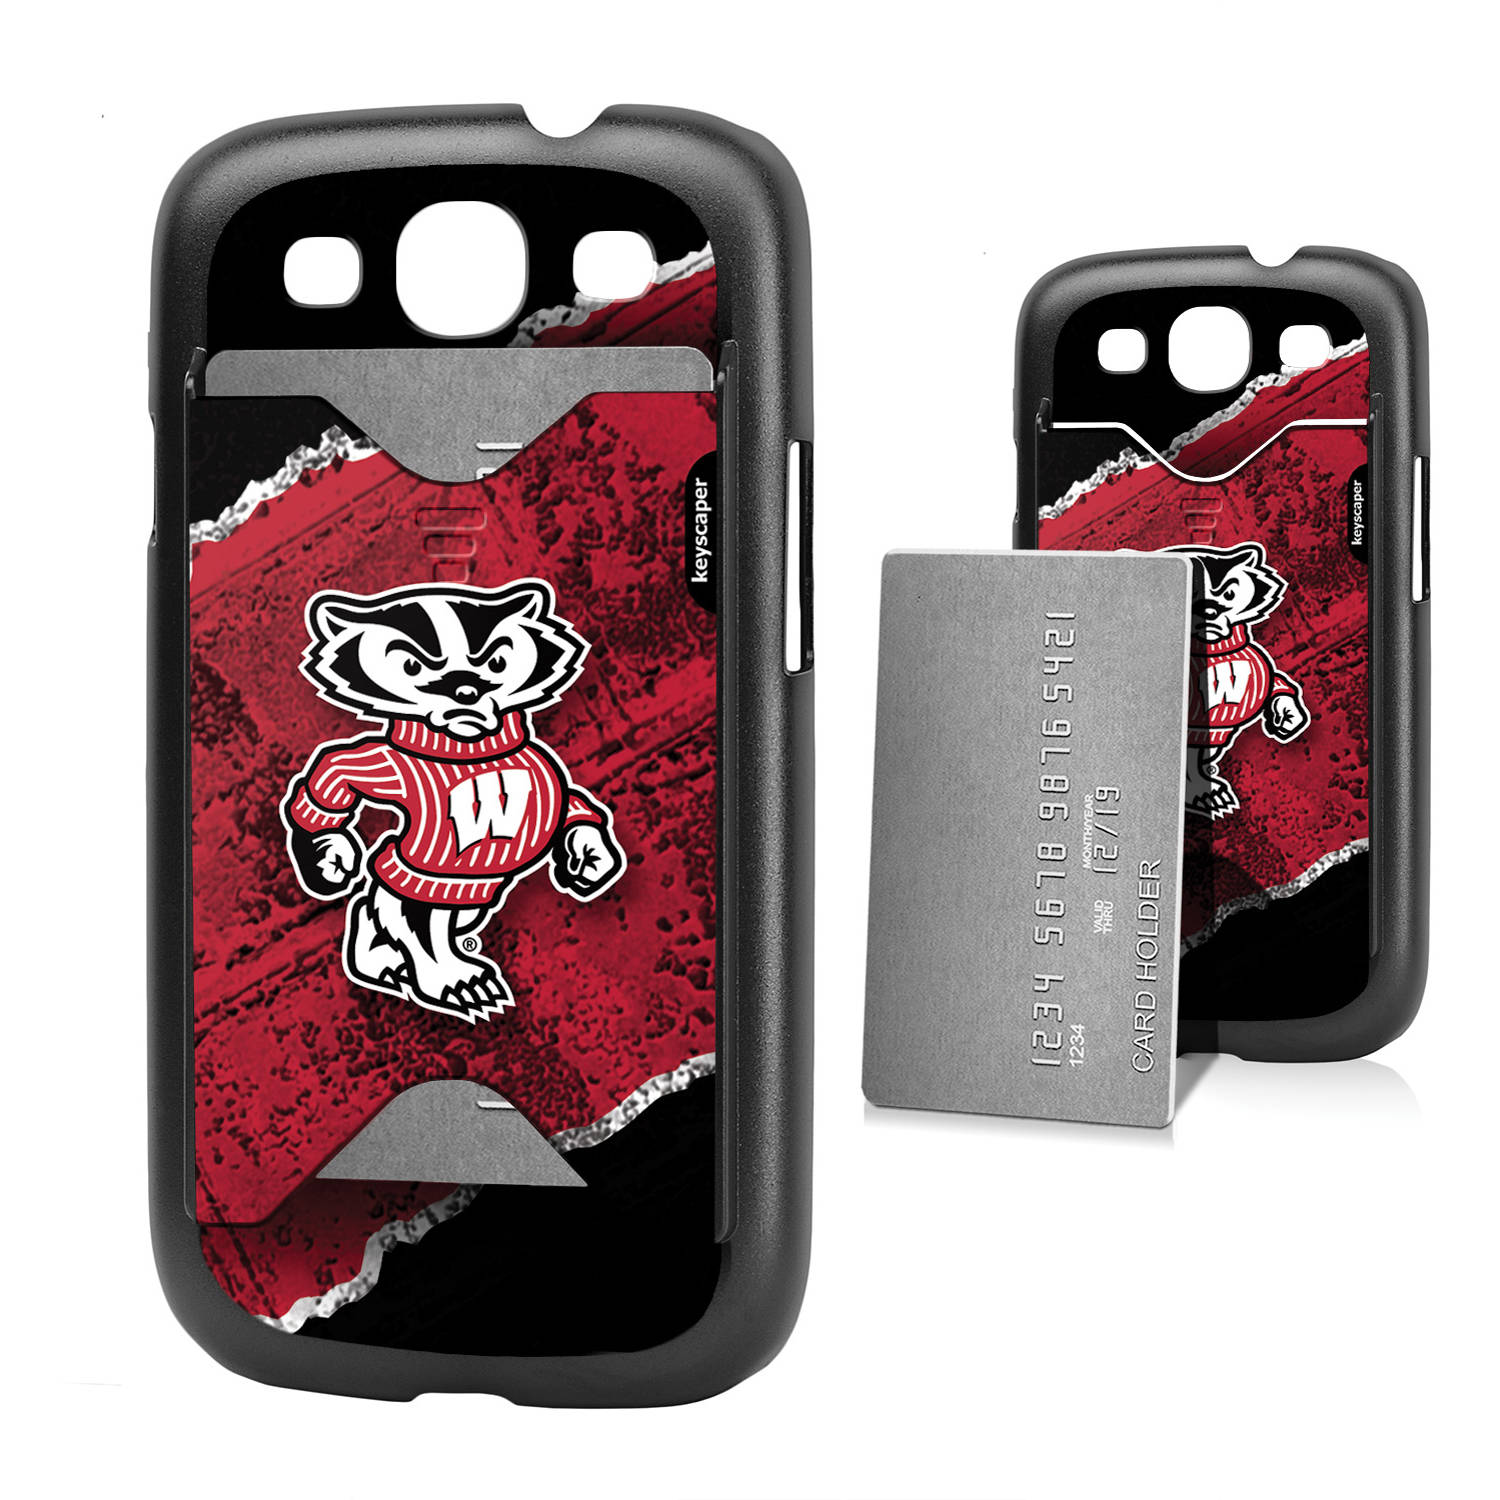 Wisconsin Badgers Galaxy S3 Credit Card Case